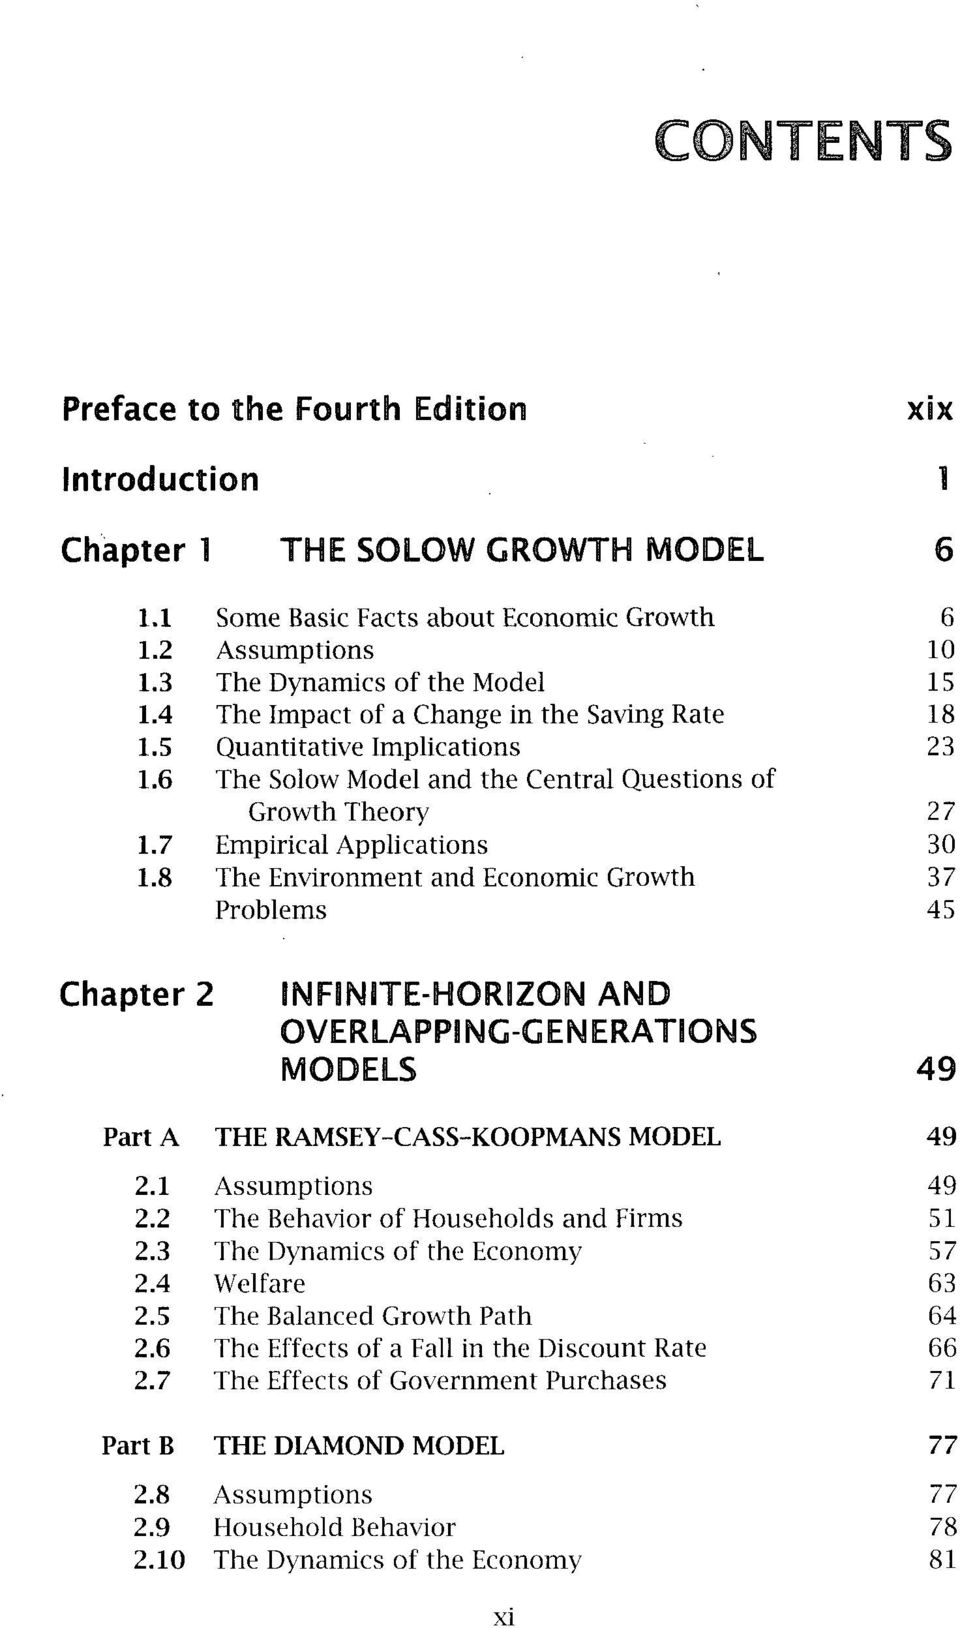 8 The Environment and Economic Growth 37 Problems 45 Chapter 2 INFBNITE-HORIZON AND OVERLAPPING-GENERATIONS MODELS 49 Part A THE RAMSEY-CASS-KOOPMANS MODEL 49 2.1 Assumptions 49 2.